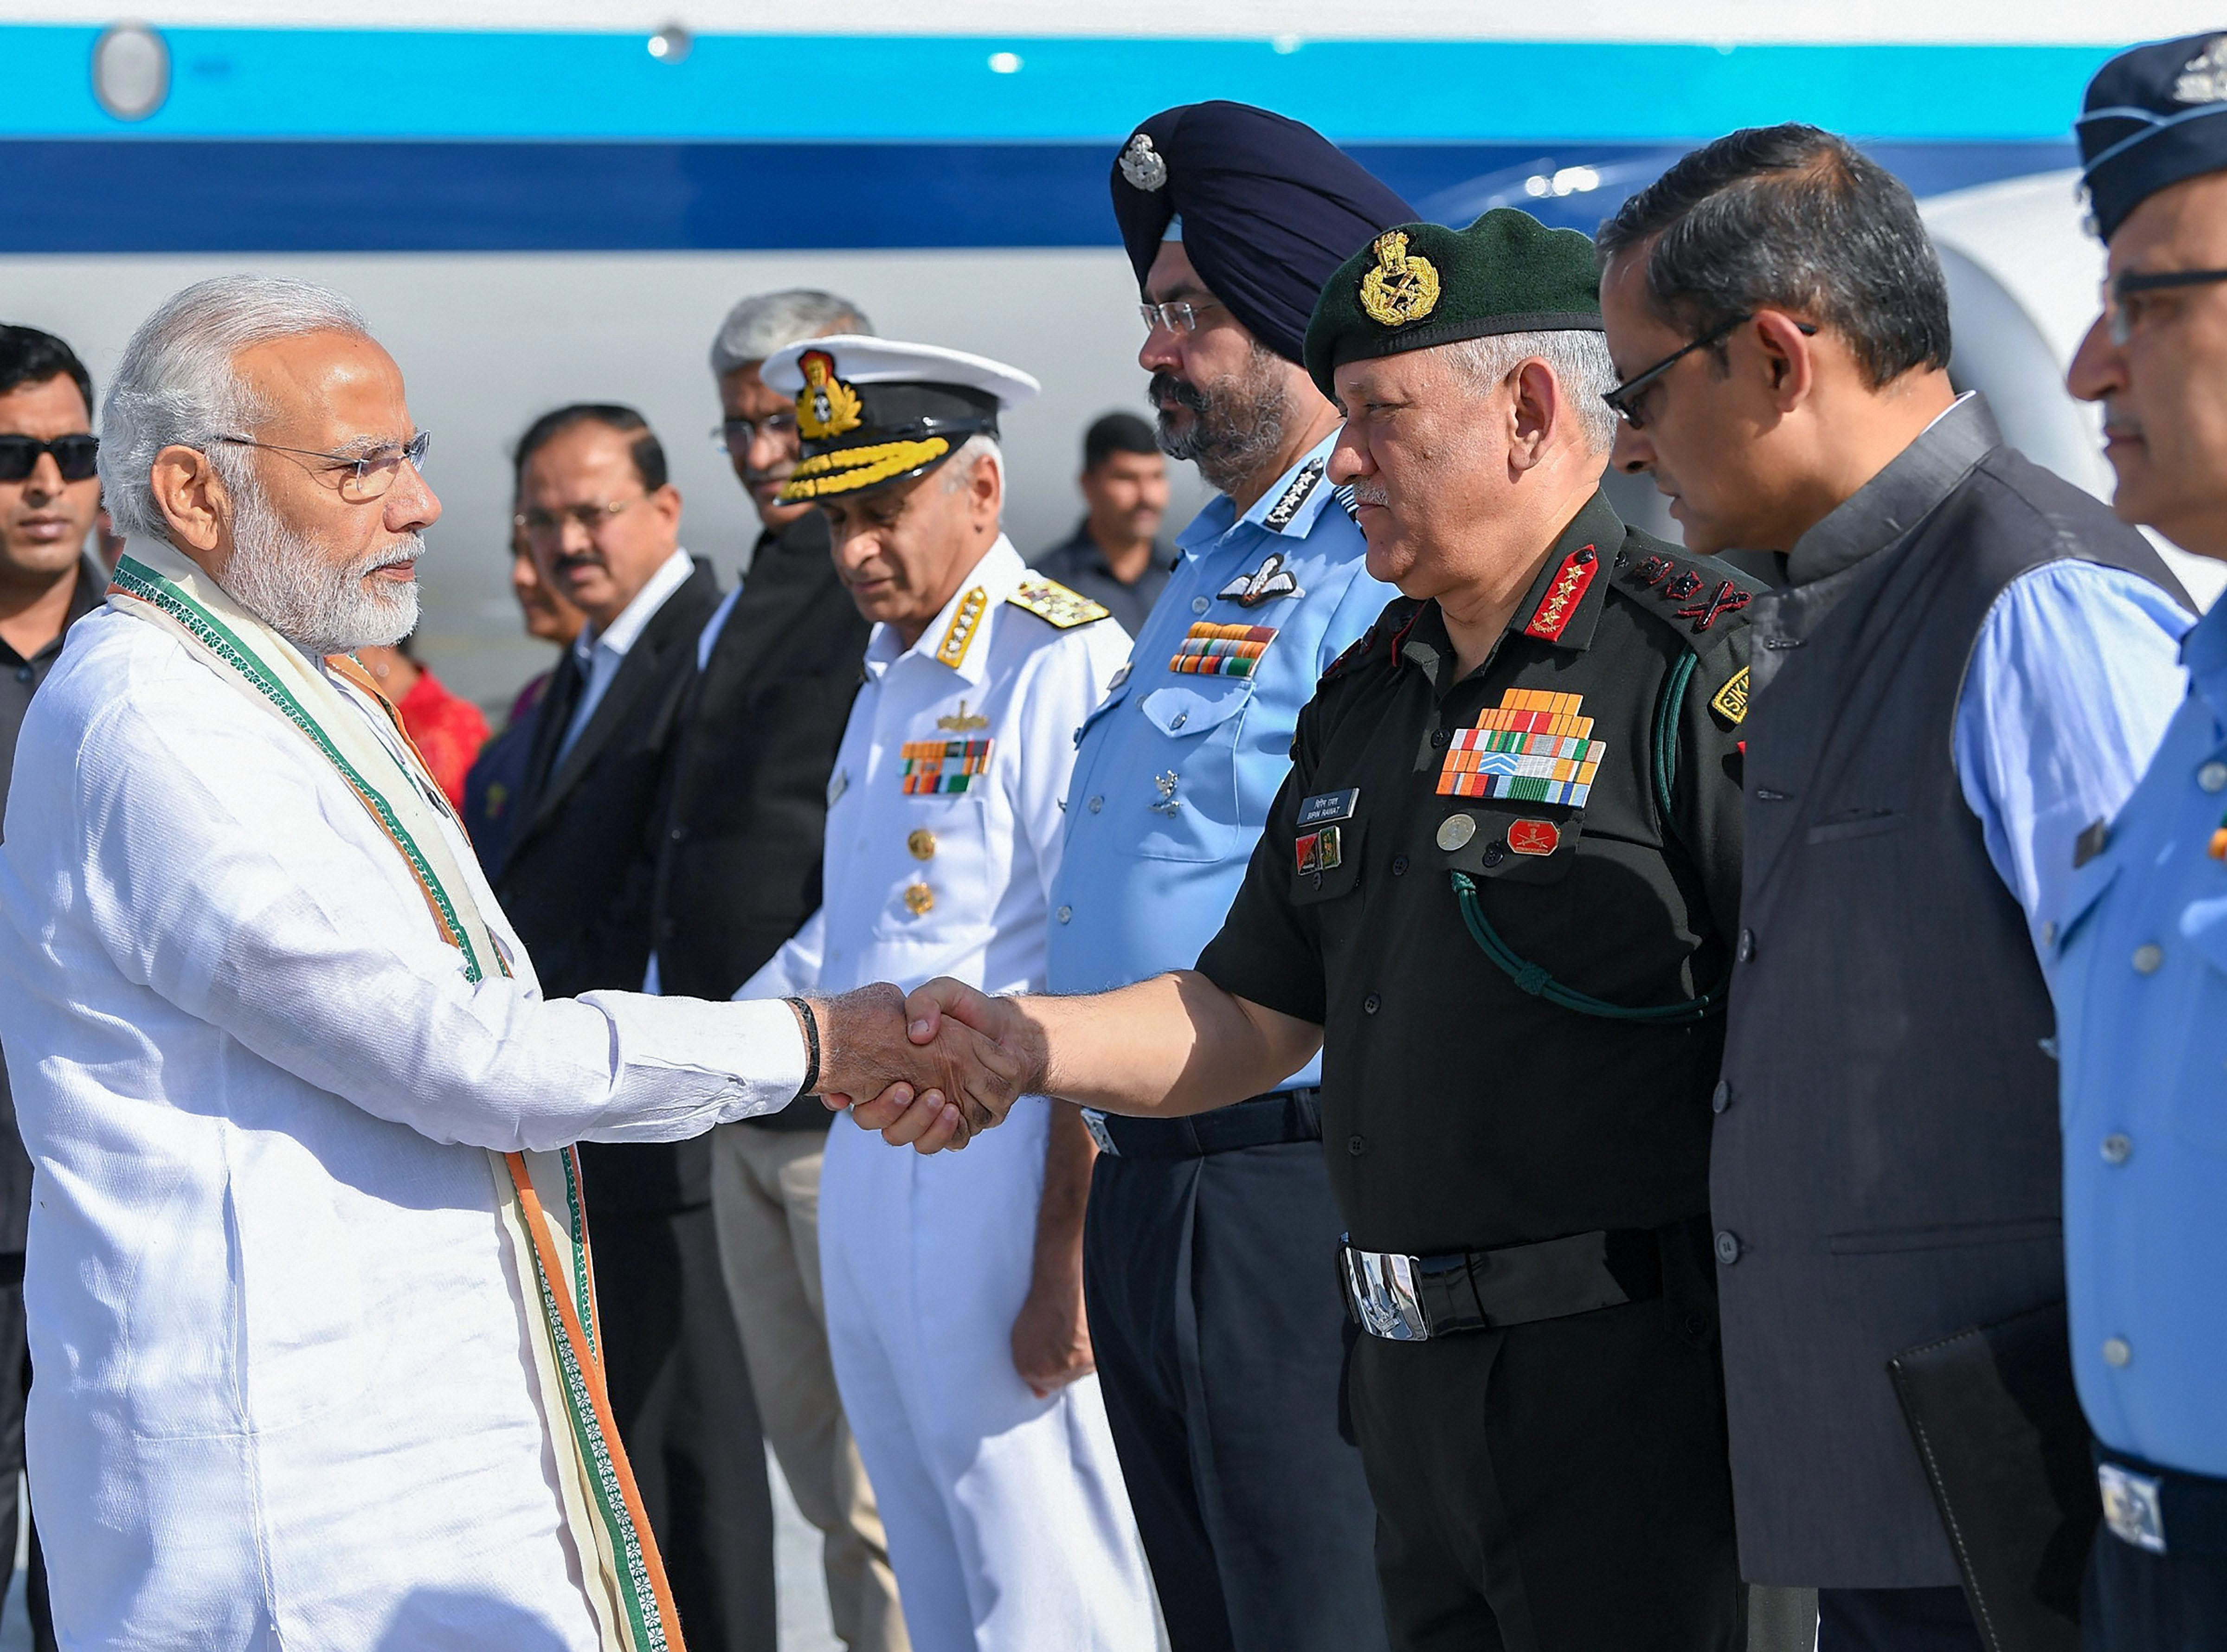 Prime Minister Narendra Modi shakes hands with Army Chief General Bipin Rawat on his arrival to attend 'Parakram Parv' celebrations, in Jodhpur - PTI